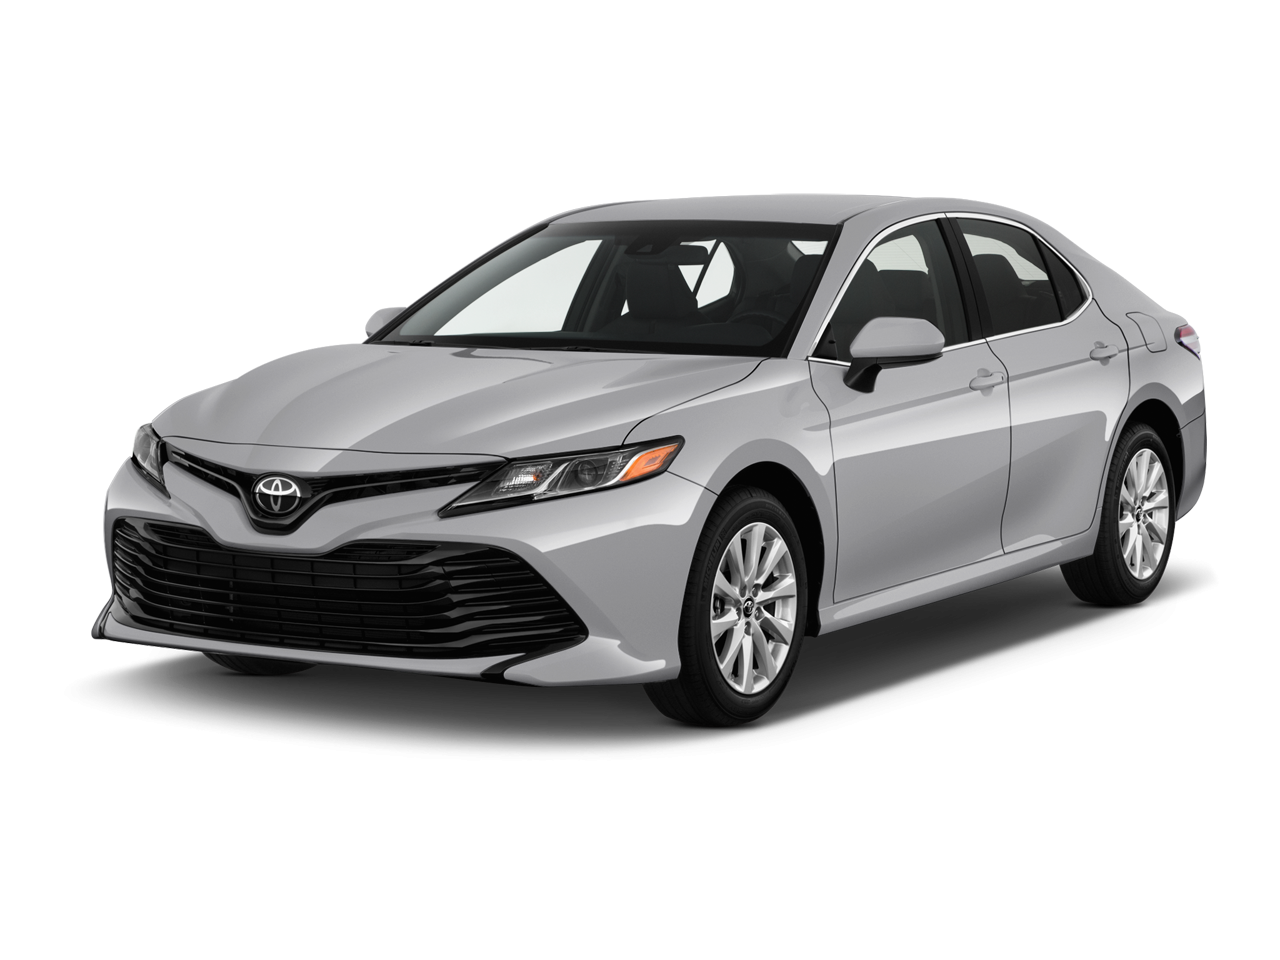 New toyota camry le. Parking lot clipart car aerial